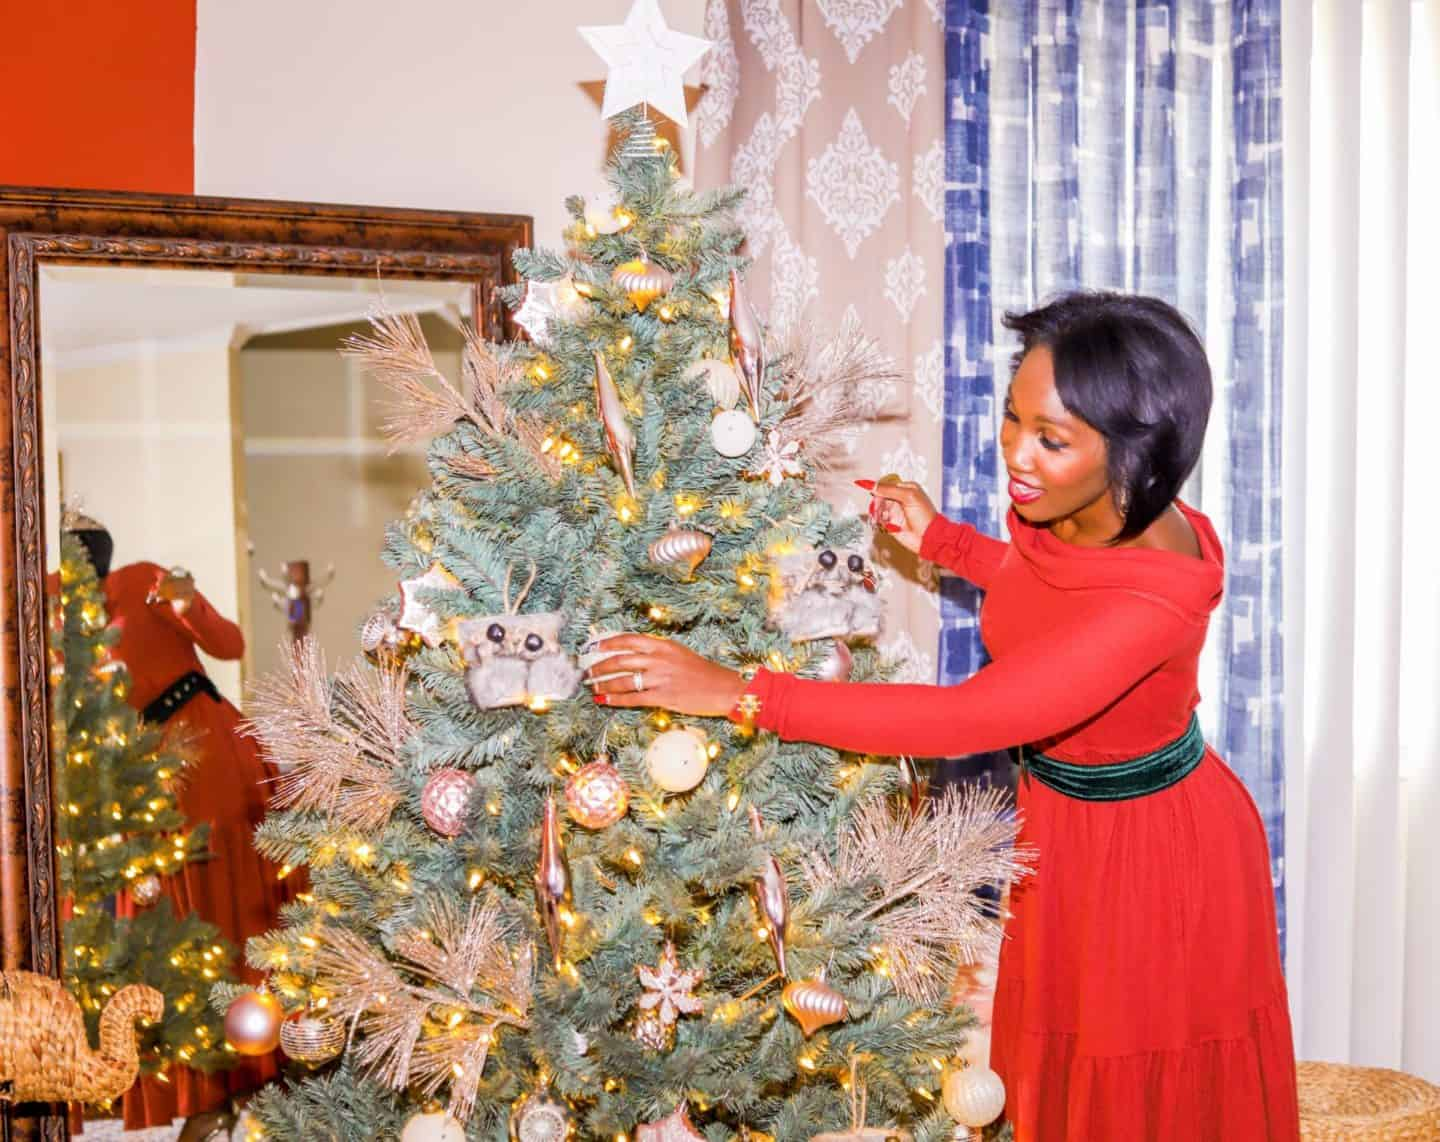 The Perfect Holiday With King Of Christmas | Shaunda Necole